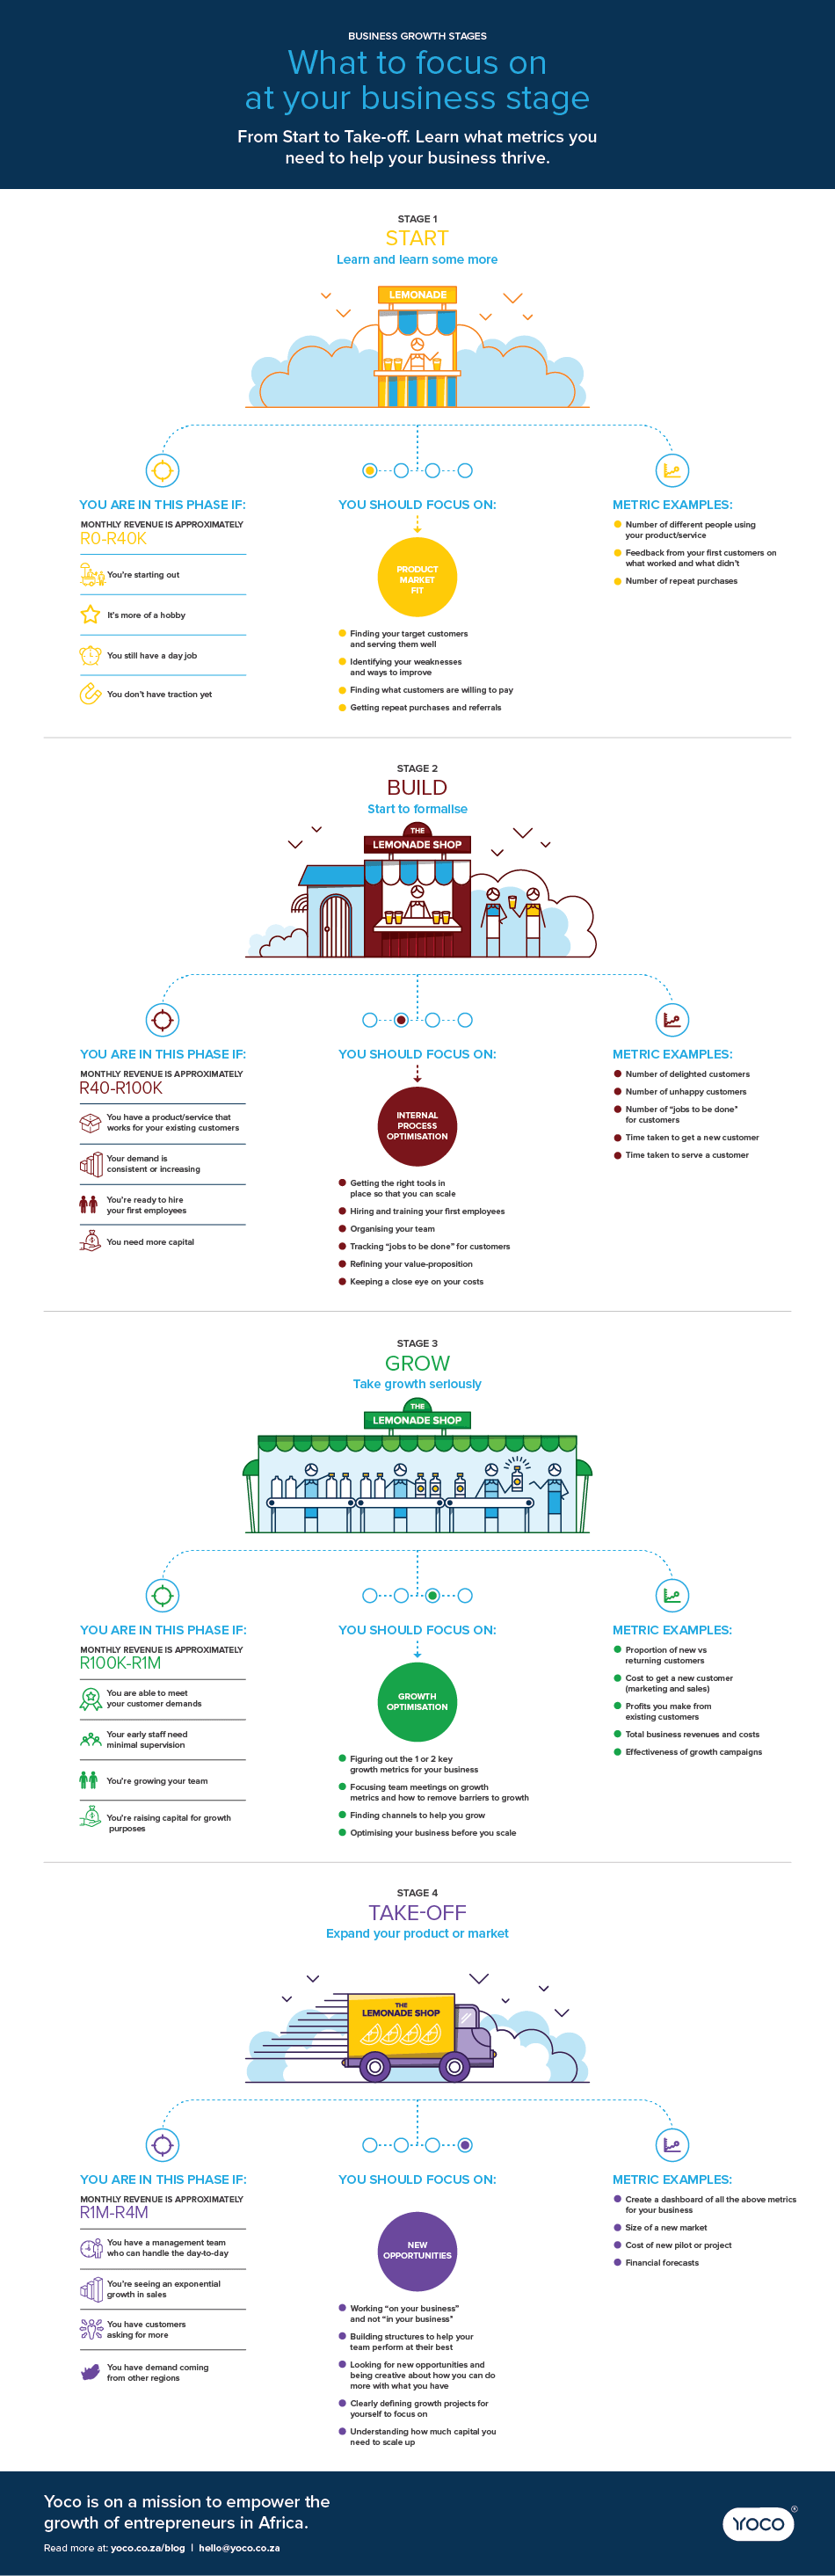 An infographic showing the stages of business growth.